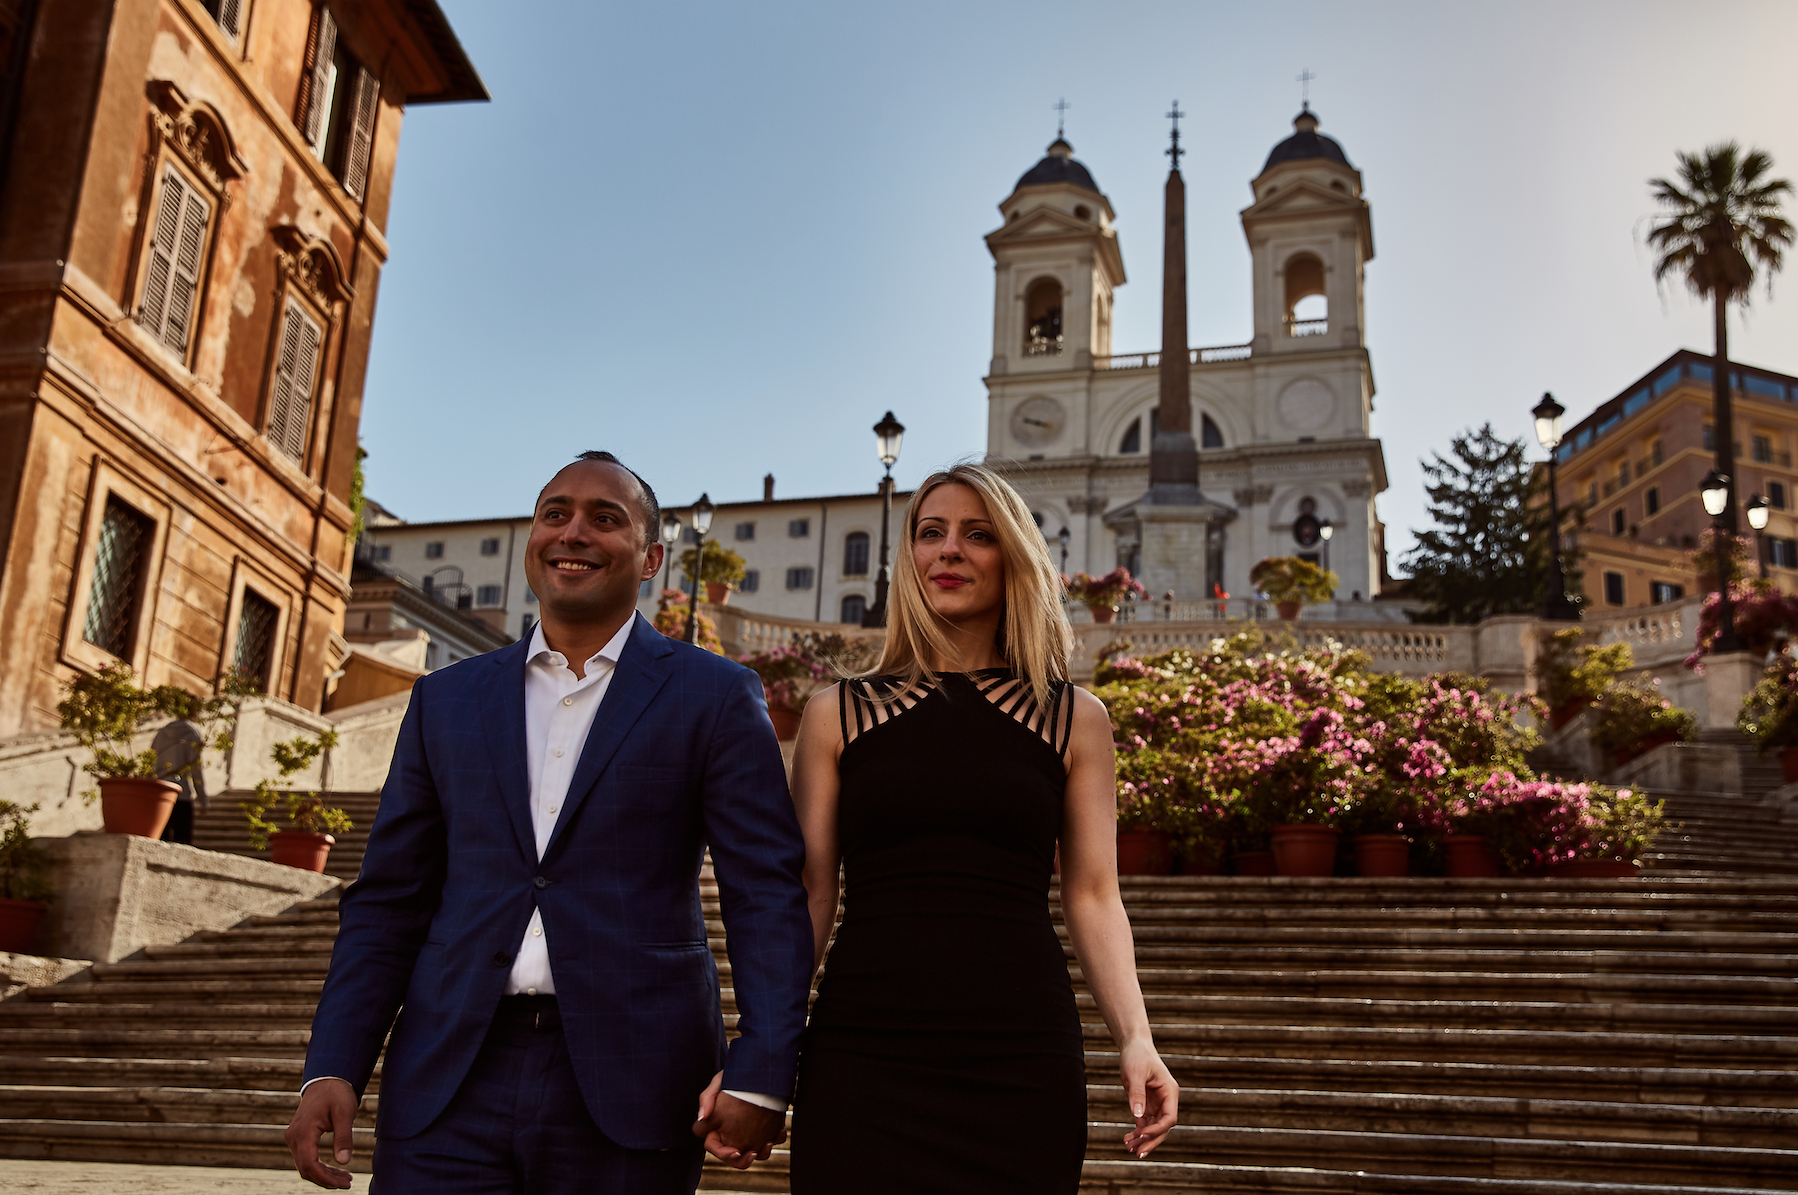 What to wear to your engagemnt photos.  Destination wedding planner Andrea Eppolito. Engagement photos in Italy.  Italian Imagery by  D2 Photography .